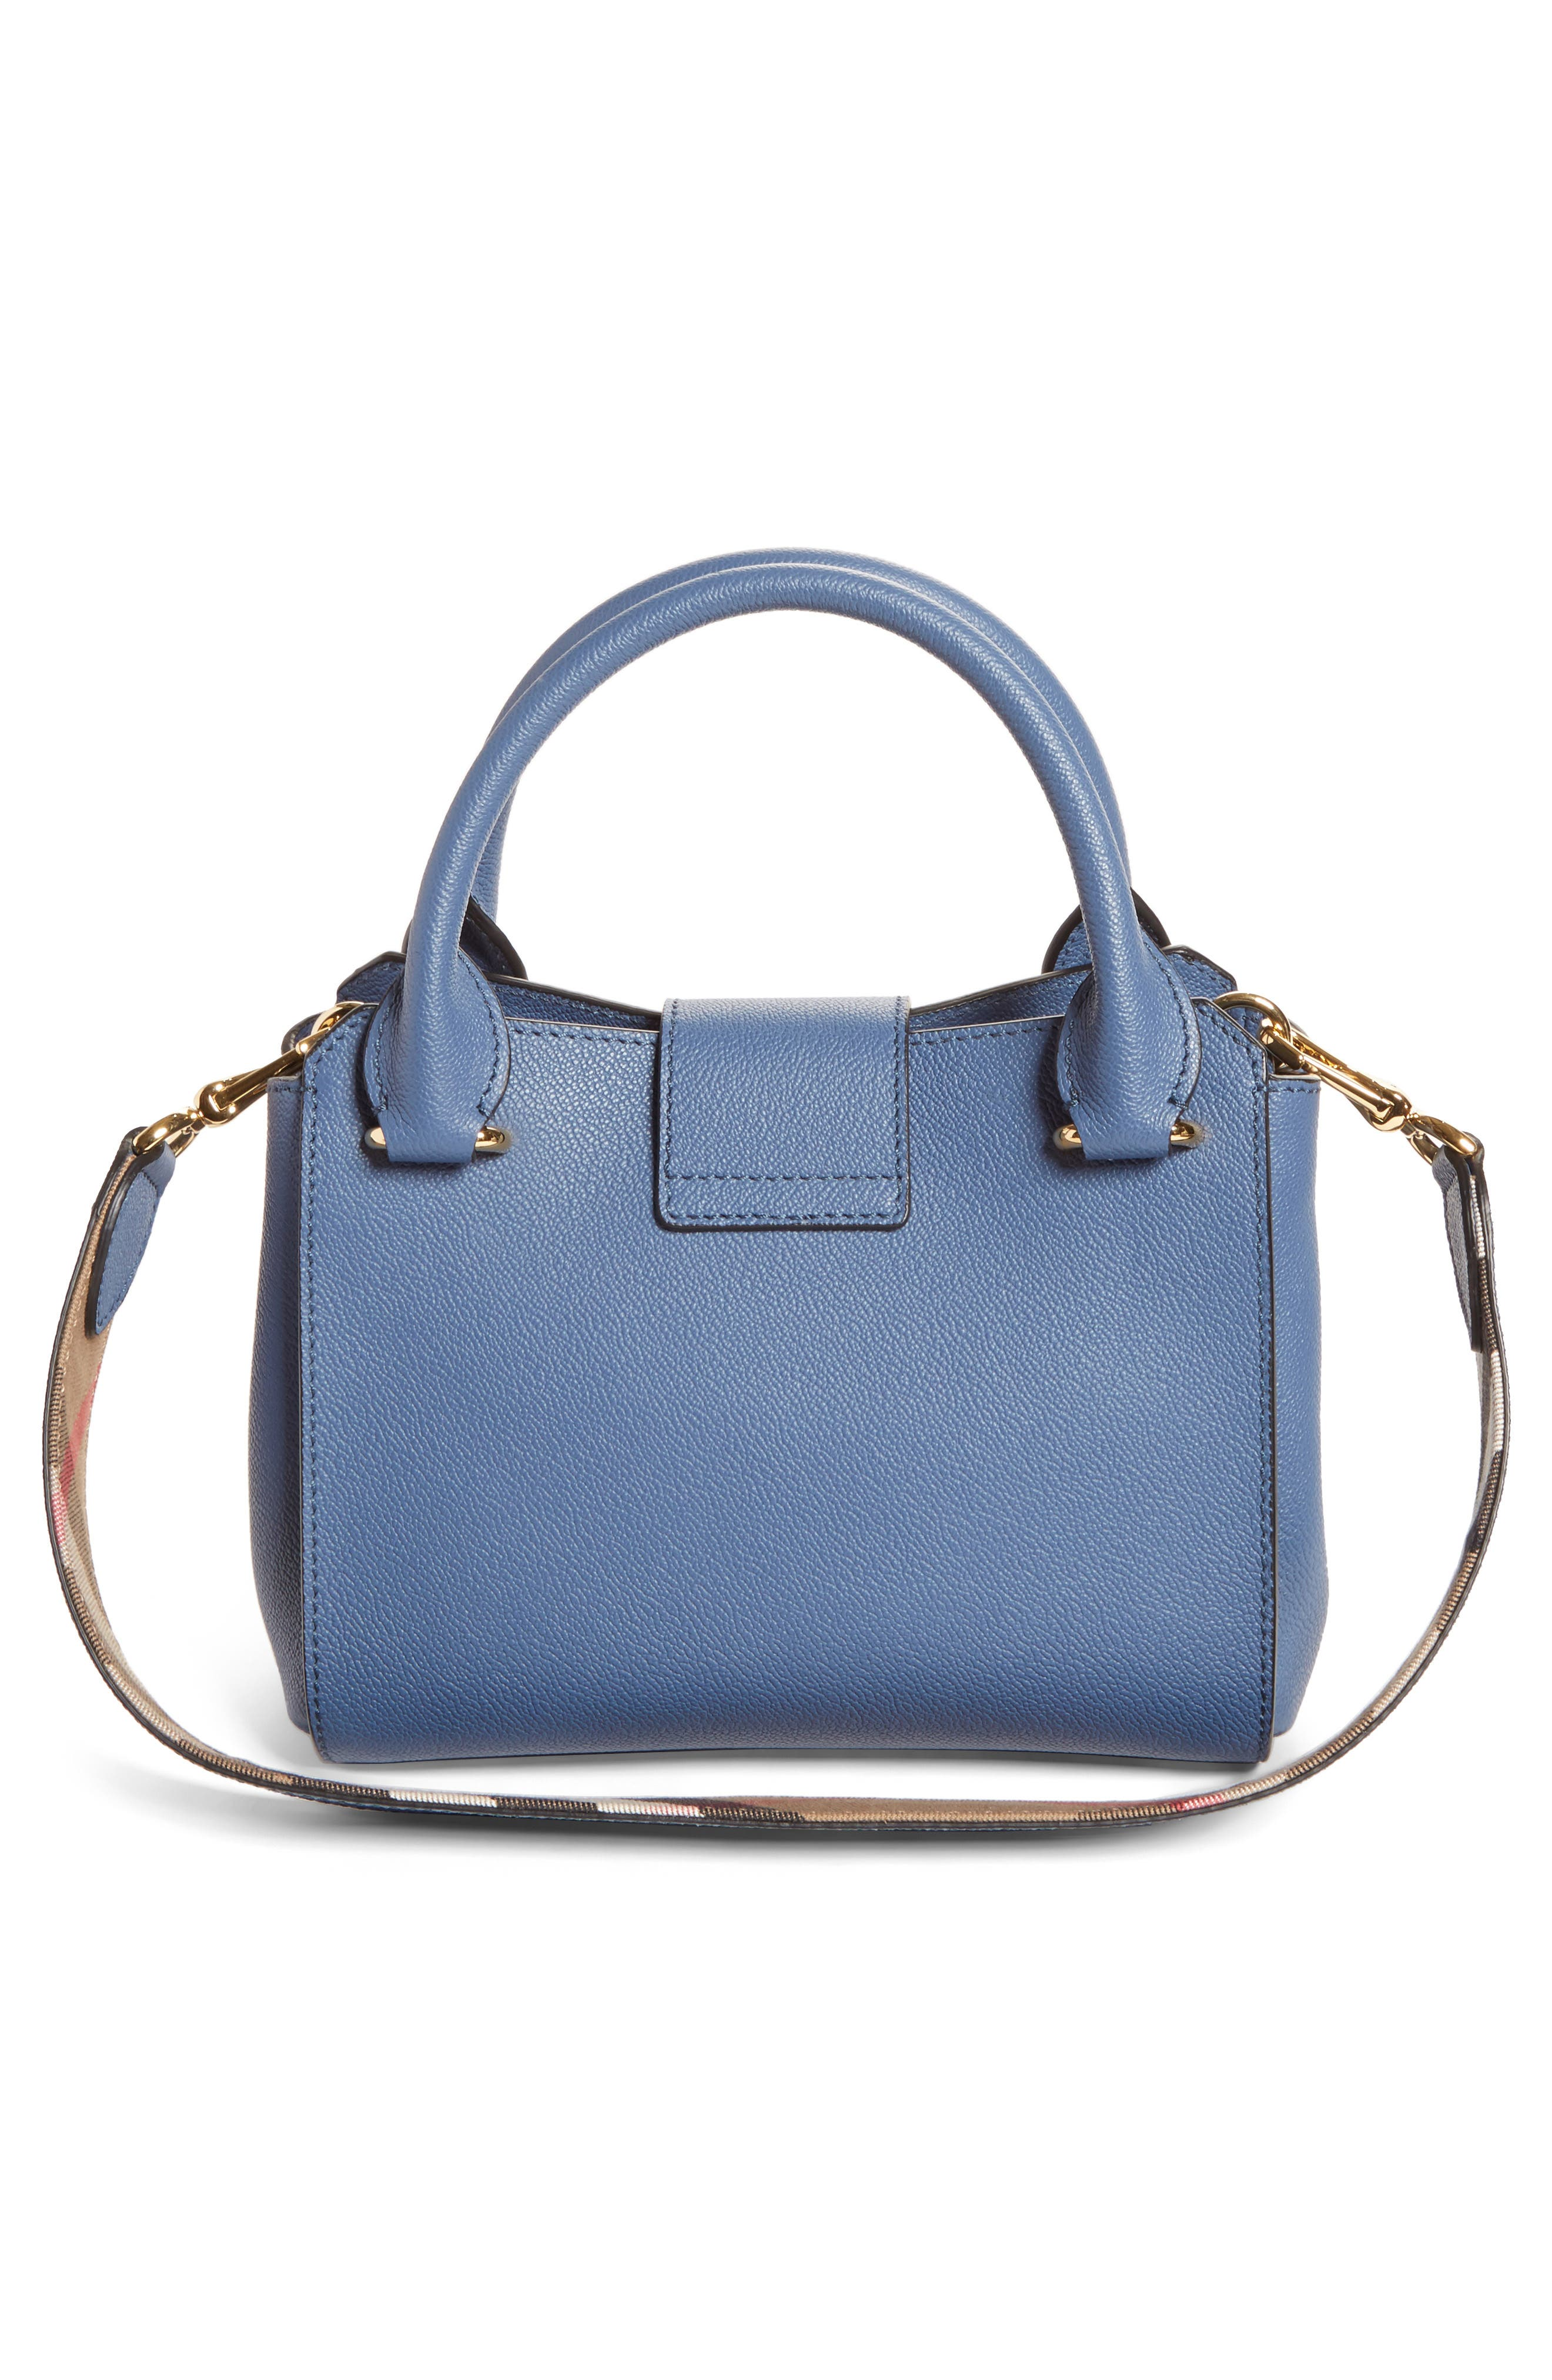 Small Buckle Leather Satchel,                             Alternate thumbnail 3, color,                             409